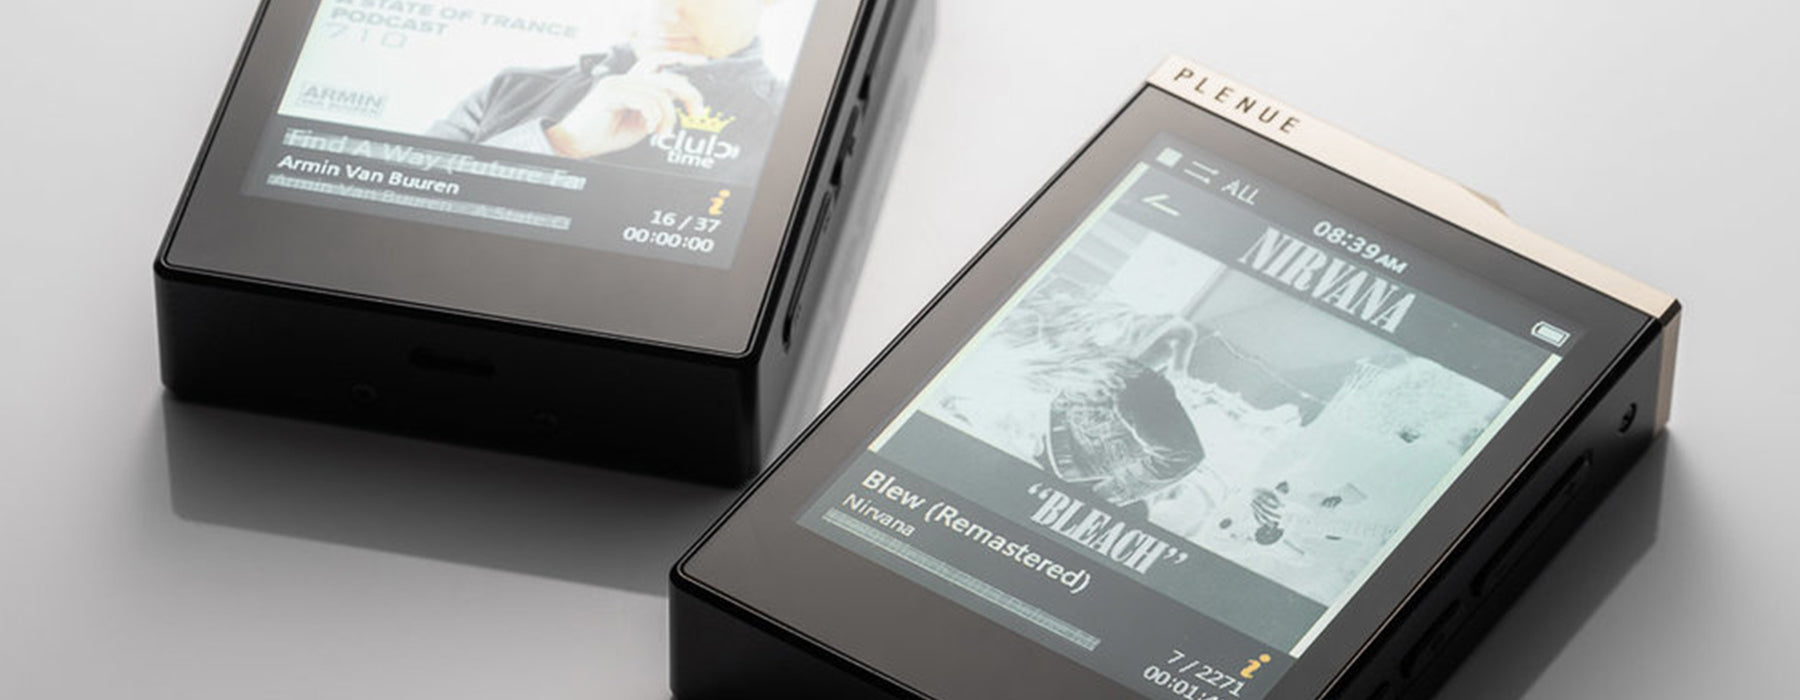 Cowon Portable Audio Players